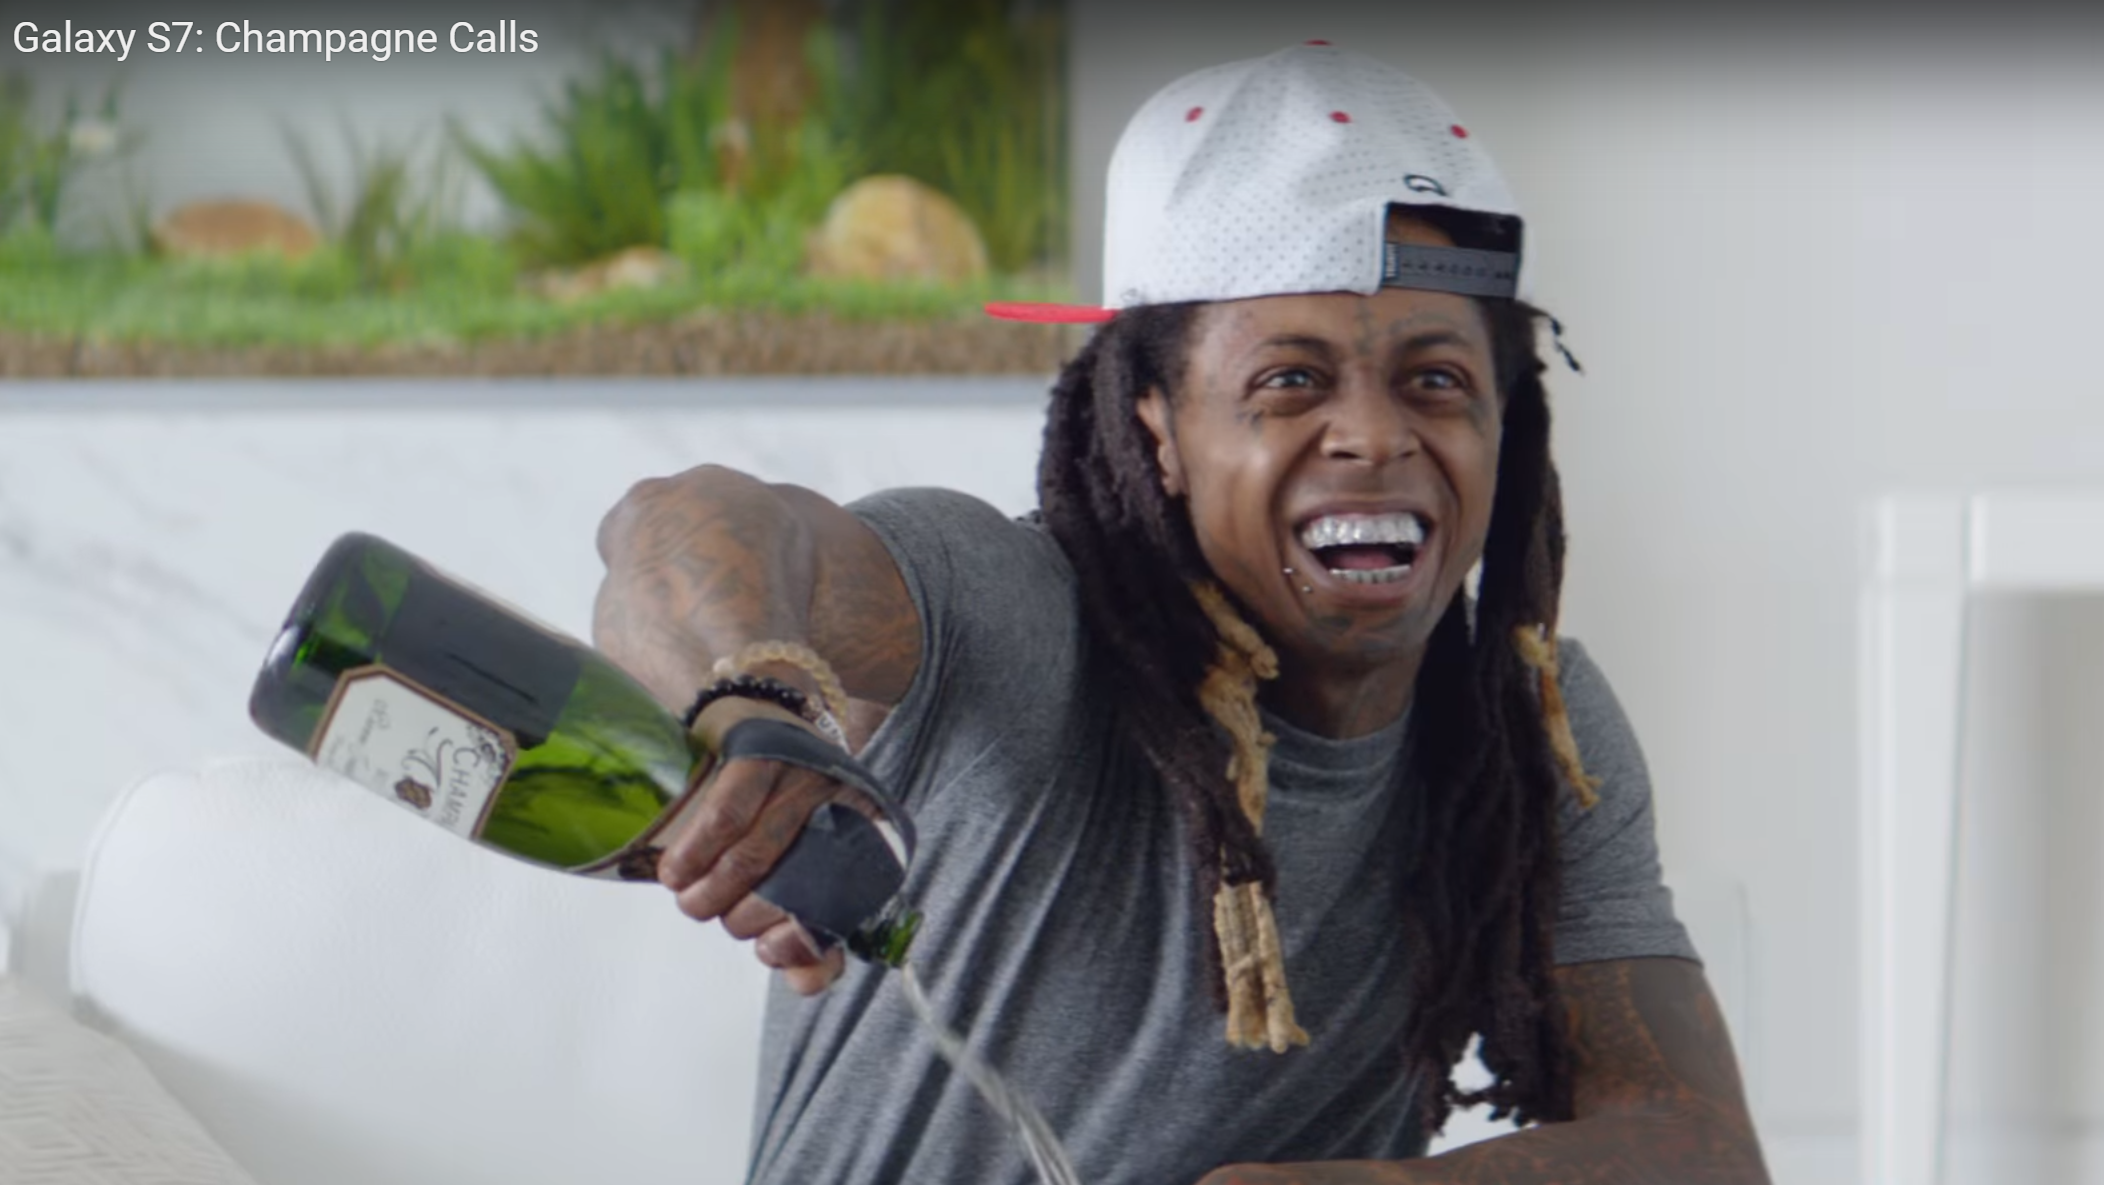 Funny Black Guy On Phone Meme : Actually quite funny] three new samsung galaxy s7 commercials